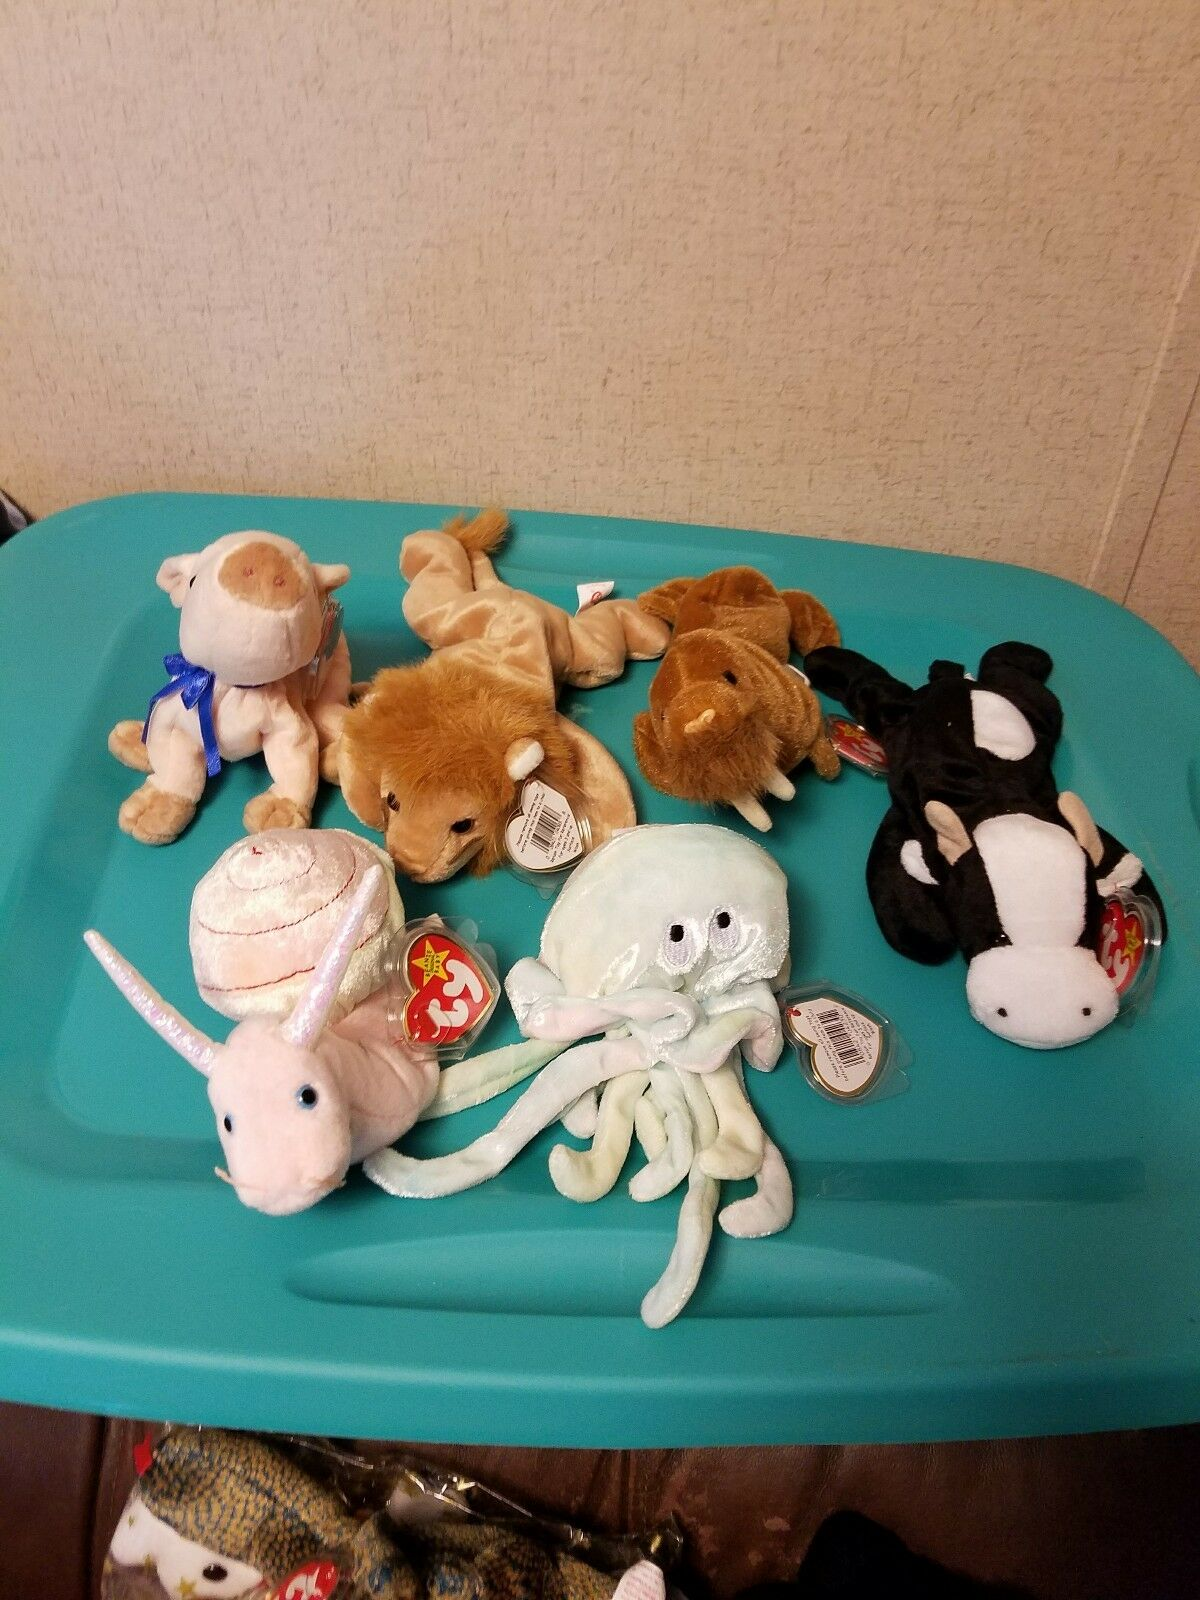 BELOW WHOLESALE LOT 12 ASSORTED NEW but but but RETIRED TY Beanie Babies BEANIES NWT 3fabf5